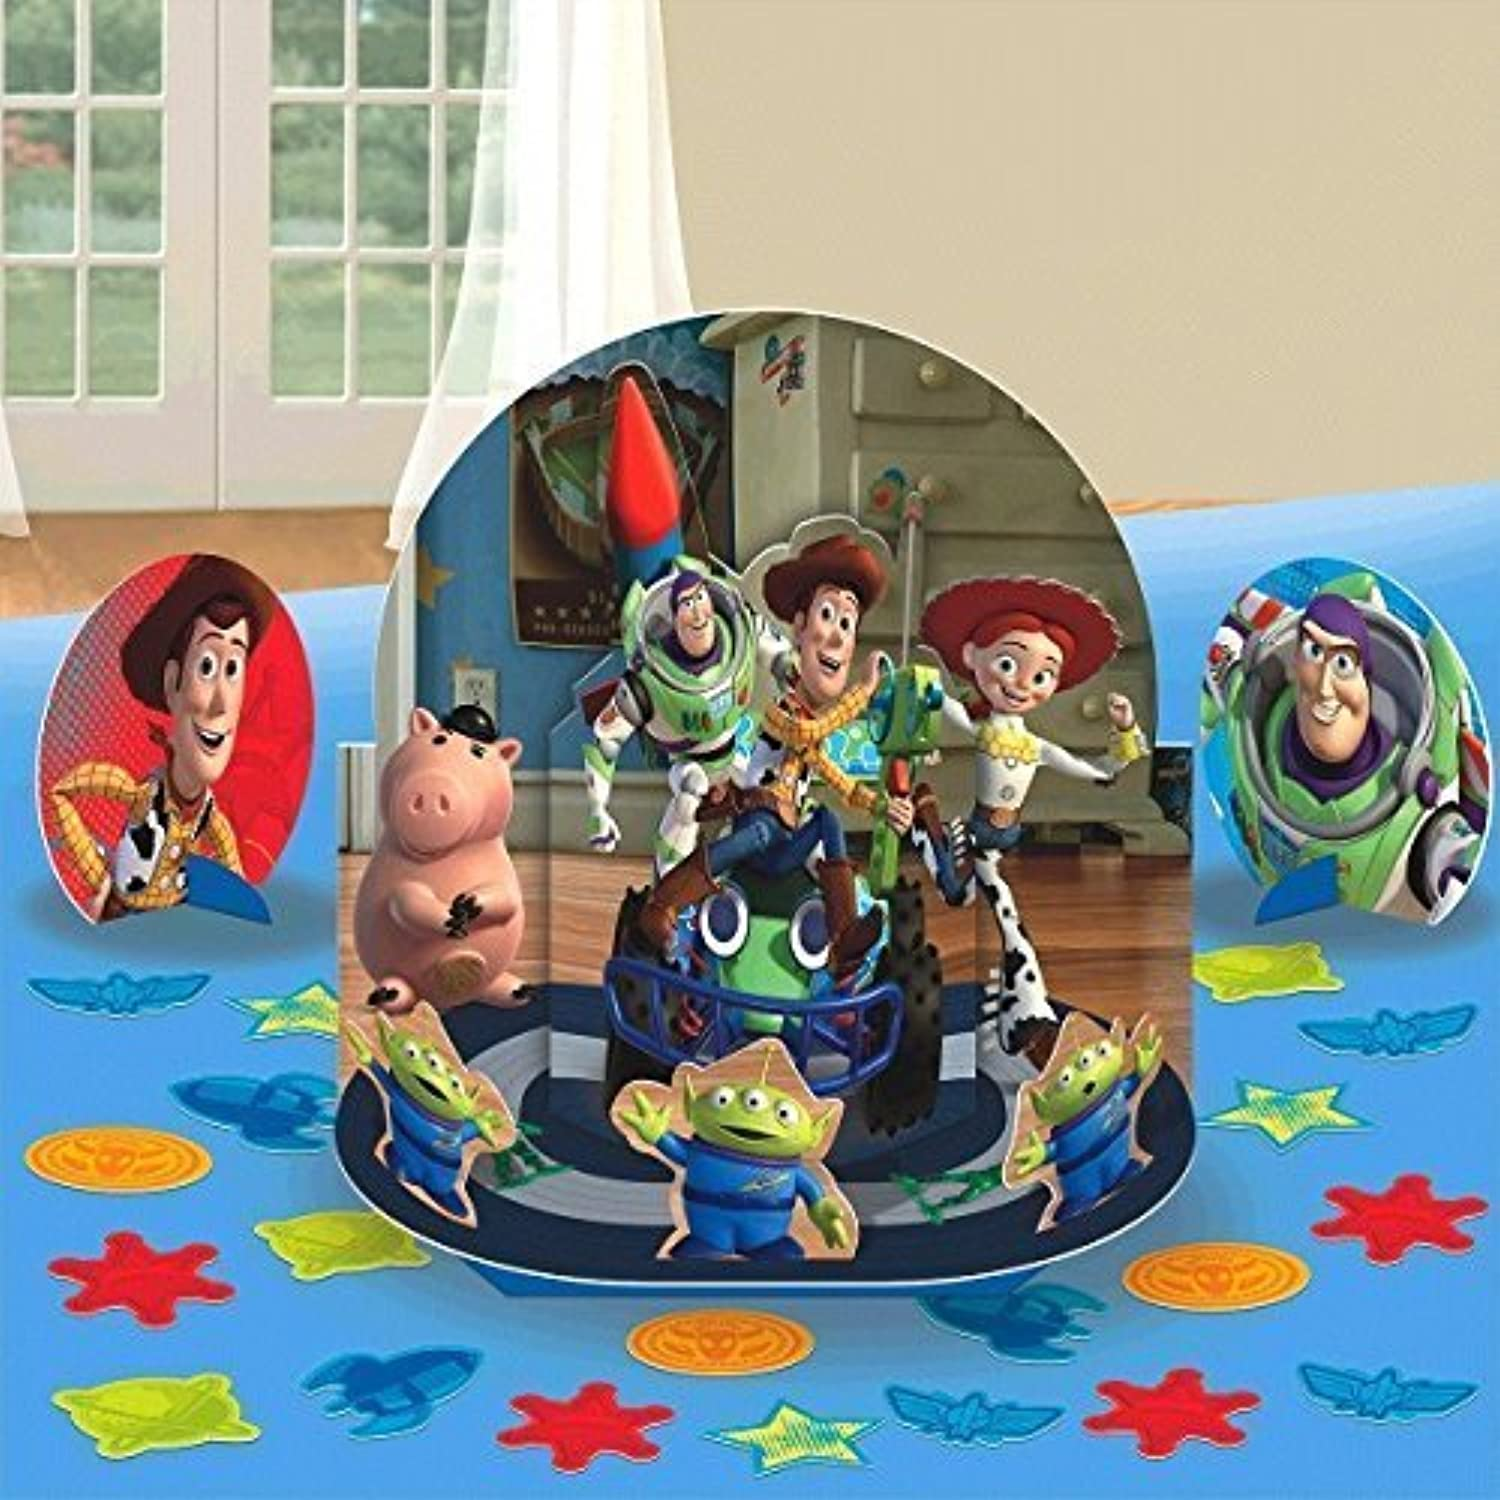 New Disney Toy Story Party Table Decorations Kit ( Centerpiece Kit ) 23 PCS  Kids Birthday and Party Supplies Decoration by Disney